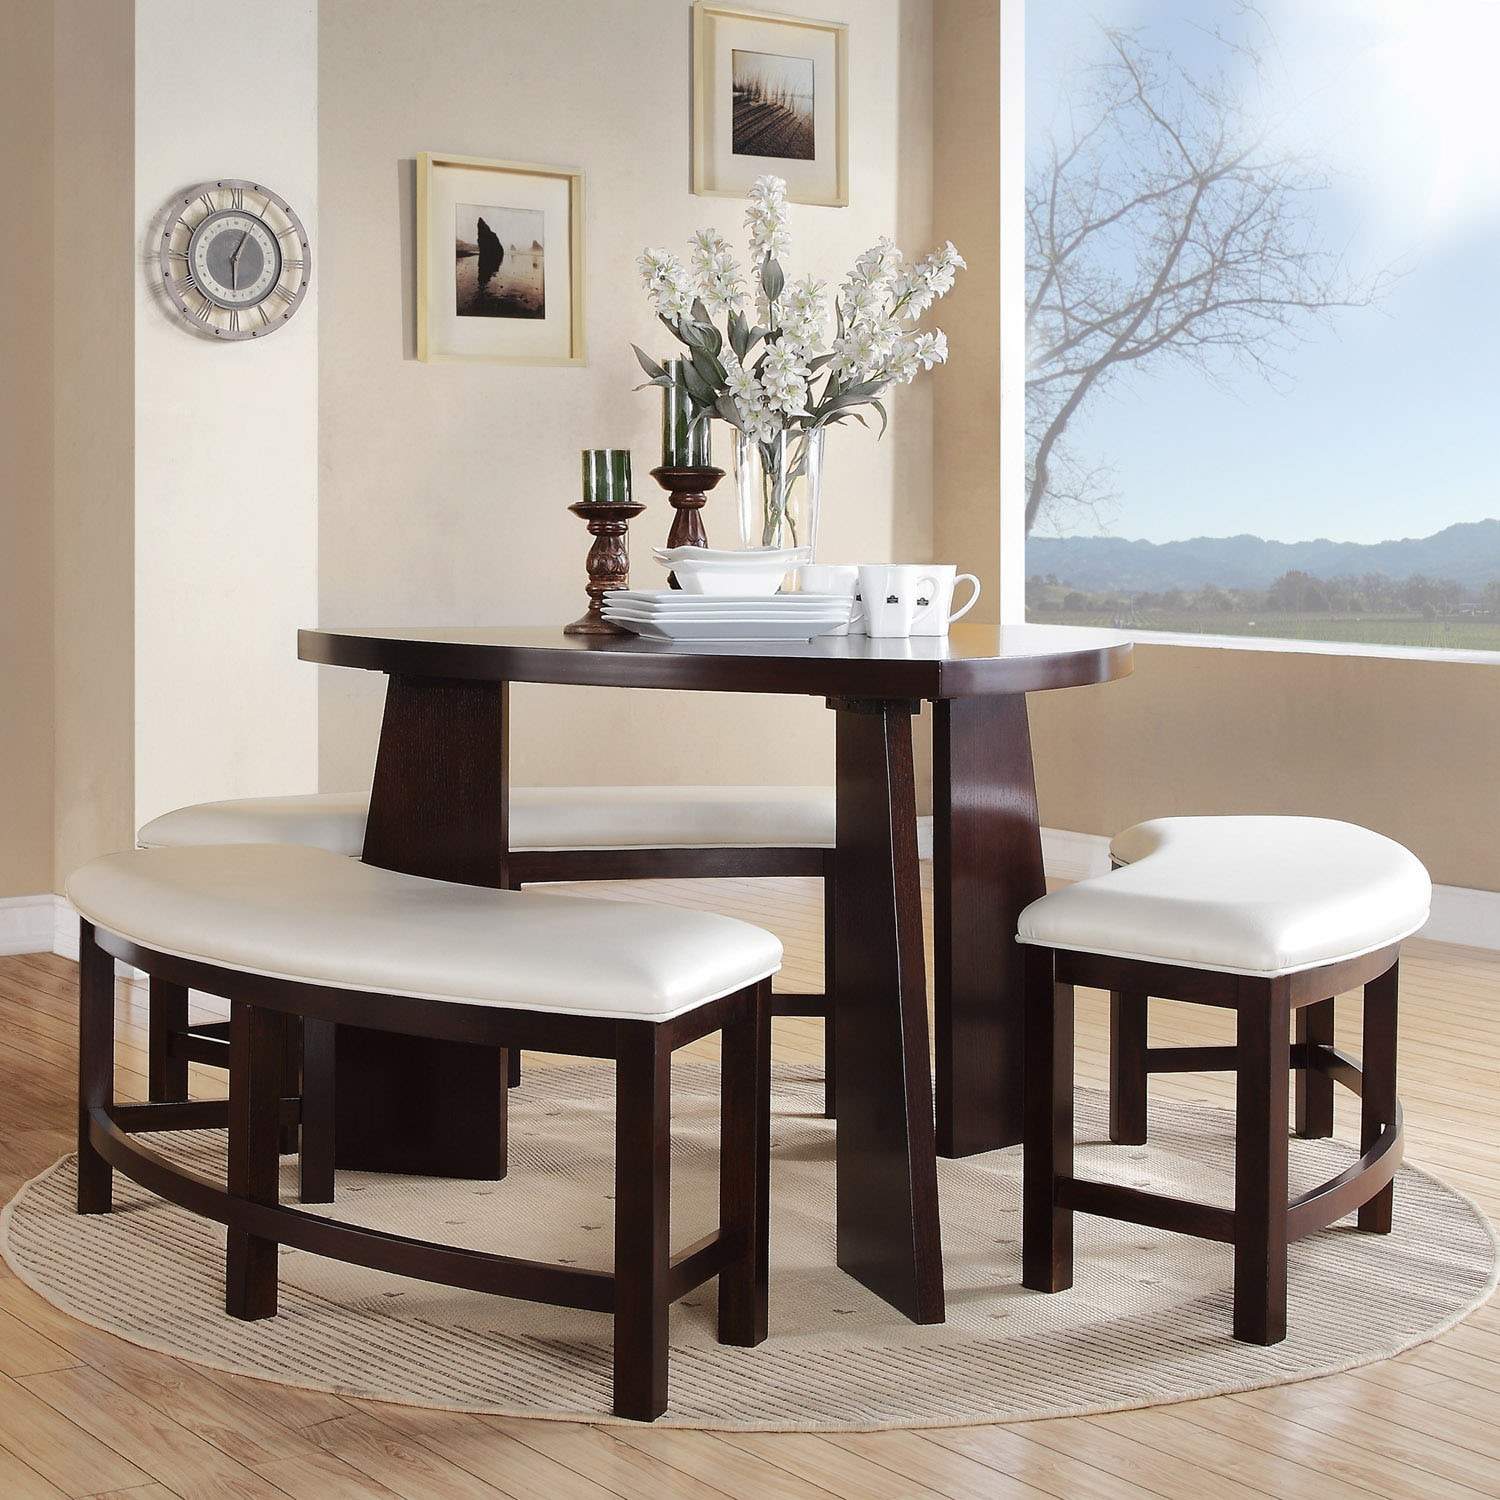 Paradise Merlot Triangle Shaped 4 piece Dining Set by iNSPIRE Q Bold